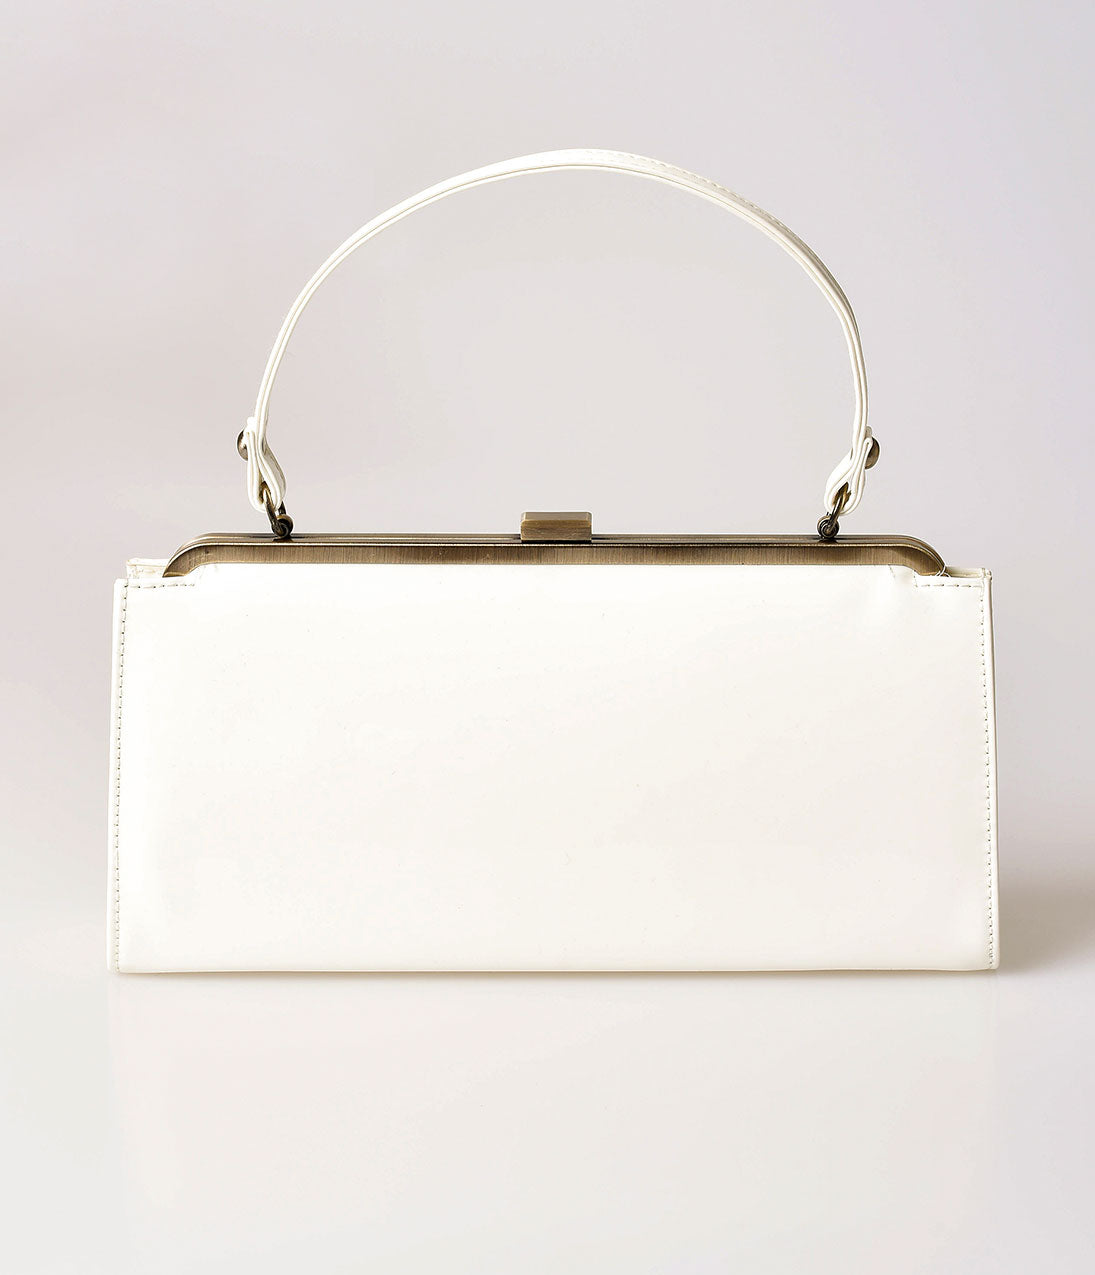 Vintage & Retro Handbags, Purses, Wallets, Bags Lola Ramona Cream Patent Leatherette Betty Frame Handbag $82.00 AT vintagedancer.com